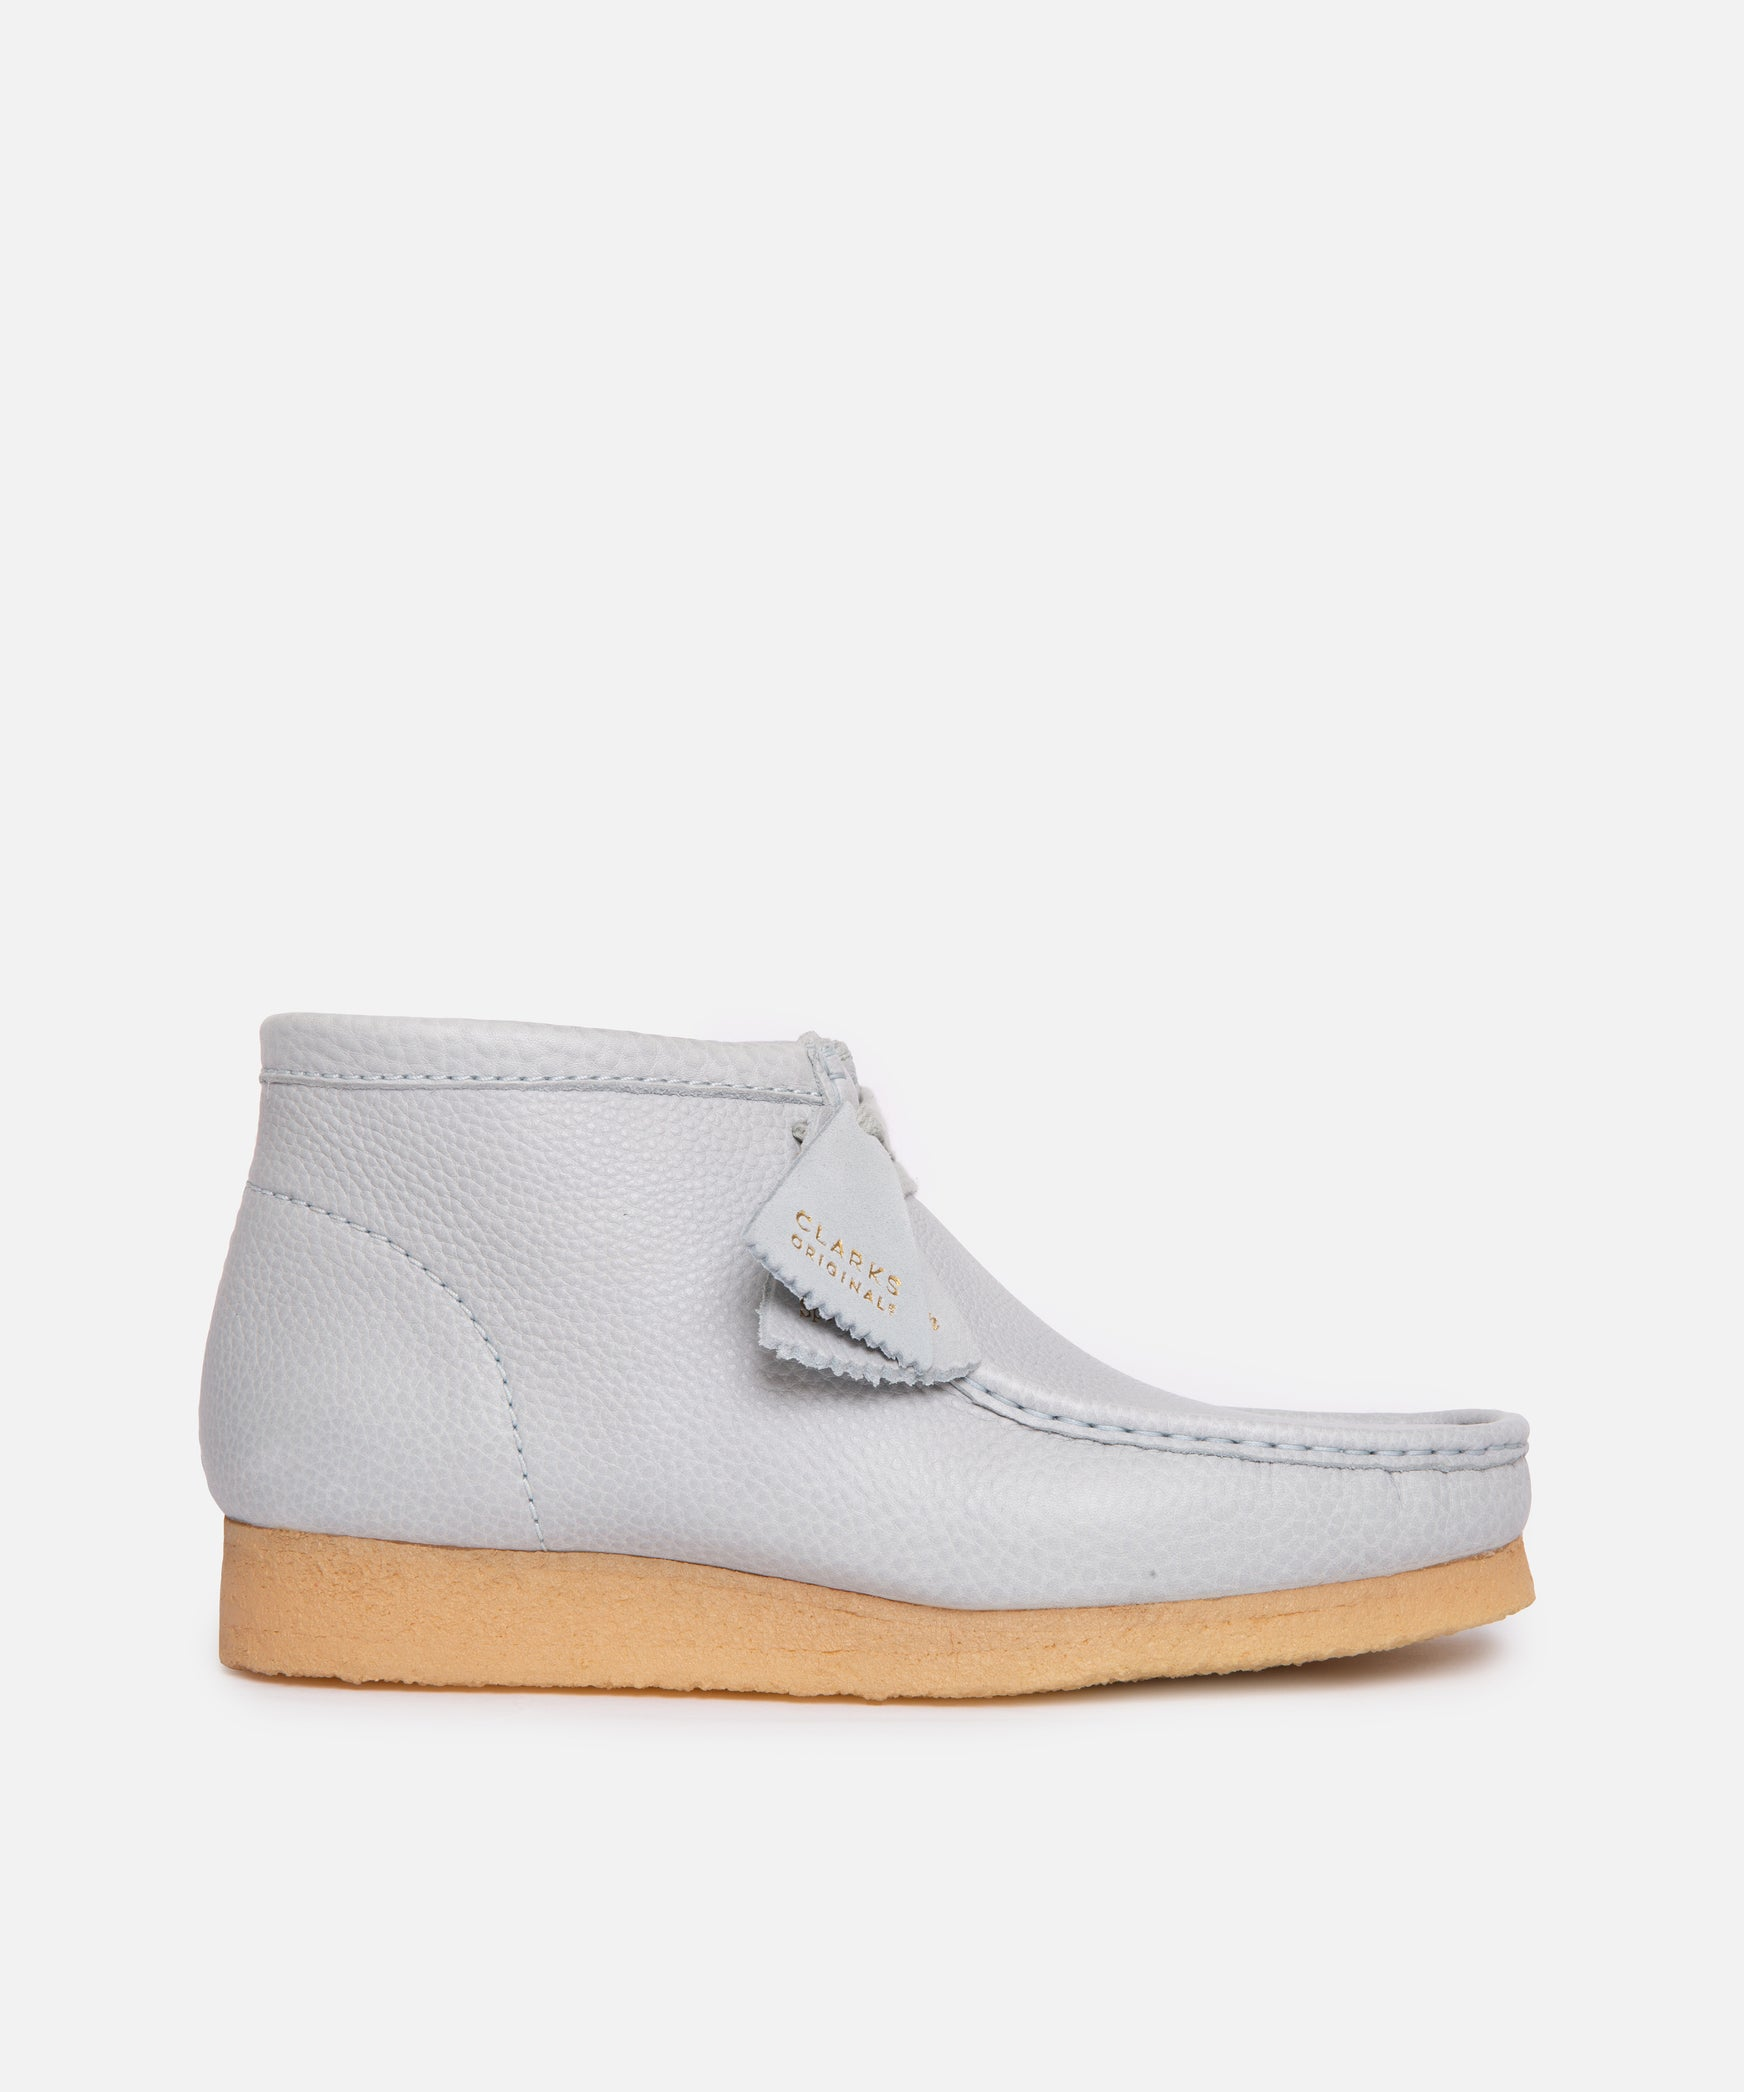 WMNS Clarks x Sporty & Rich Wallabee Boot (Light Blue Leather)